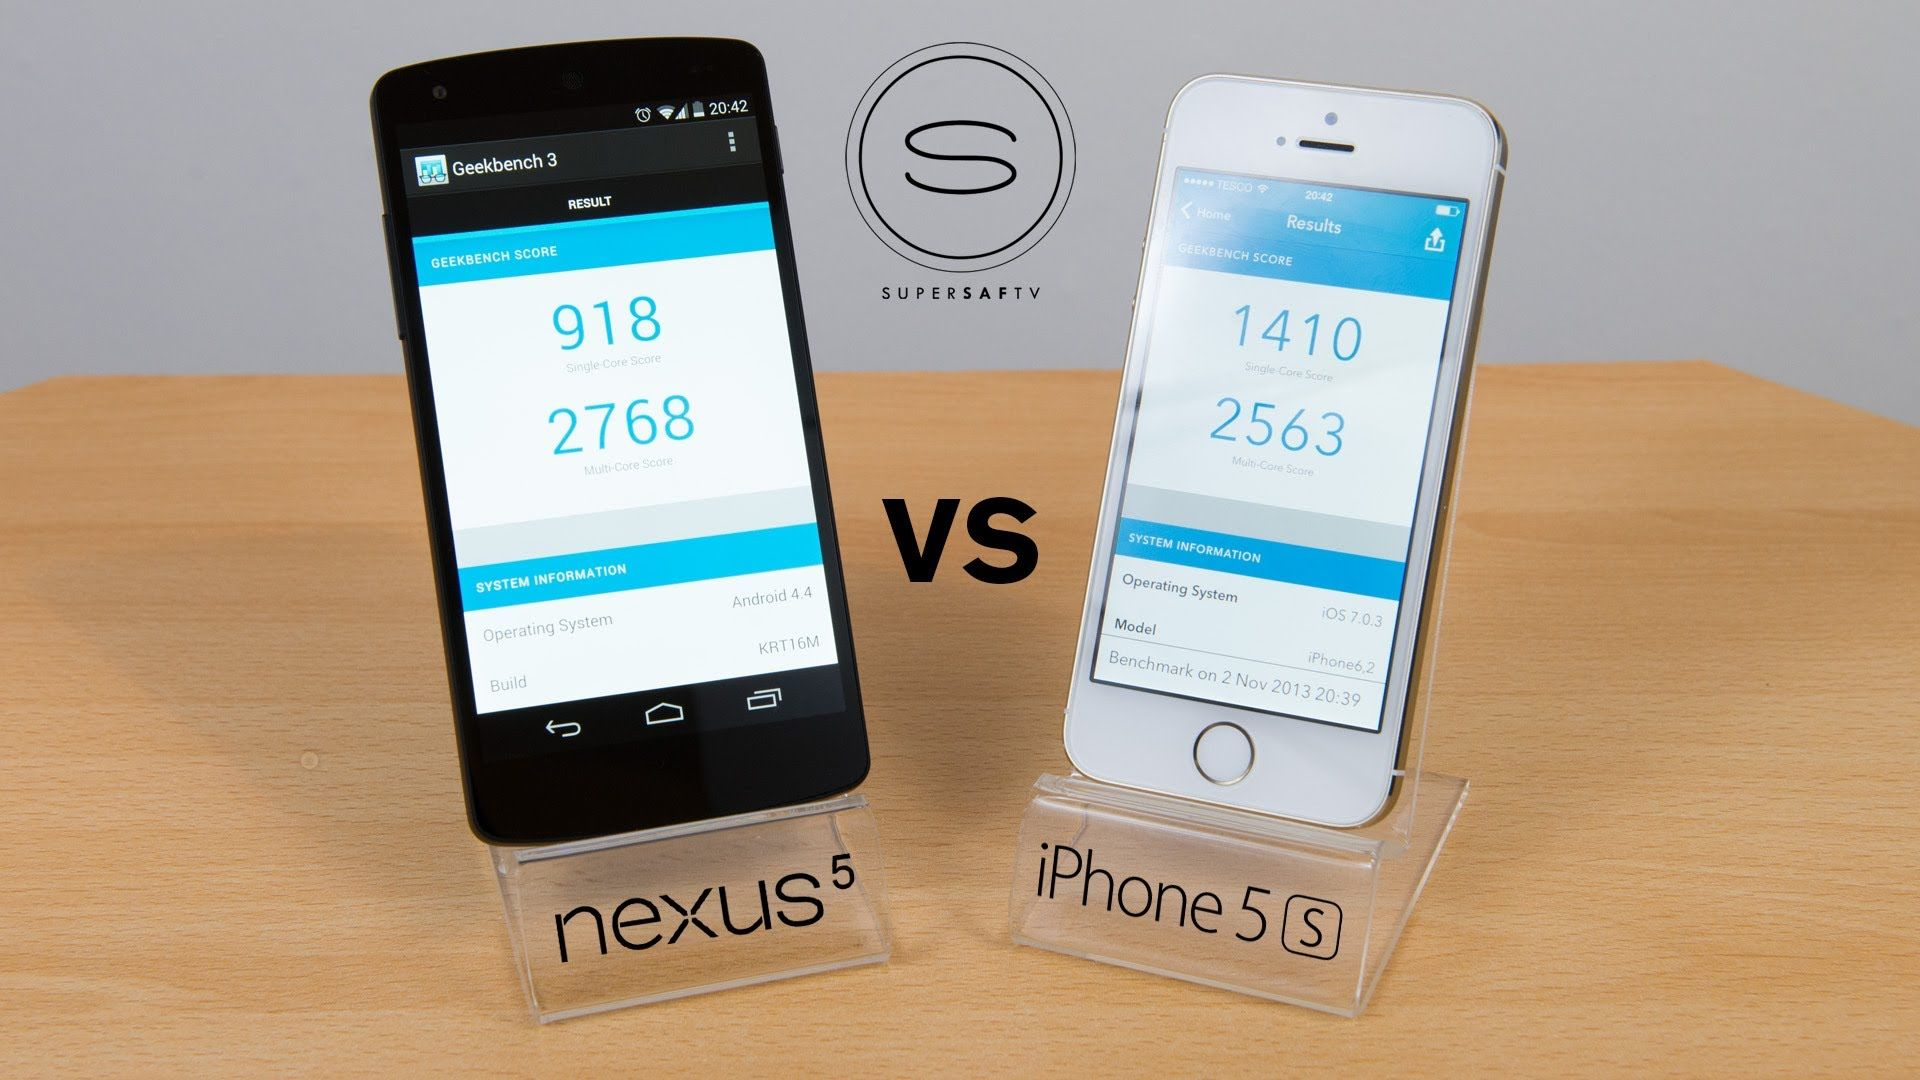 nexus 5 vs iphone 5S test